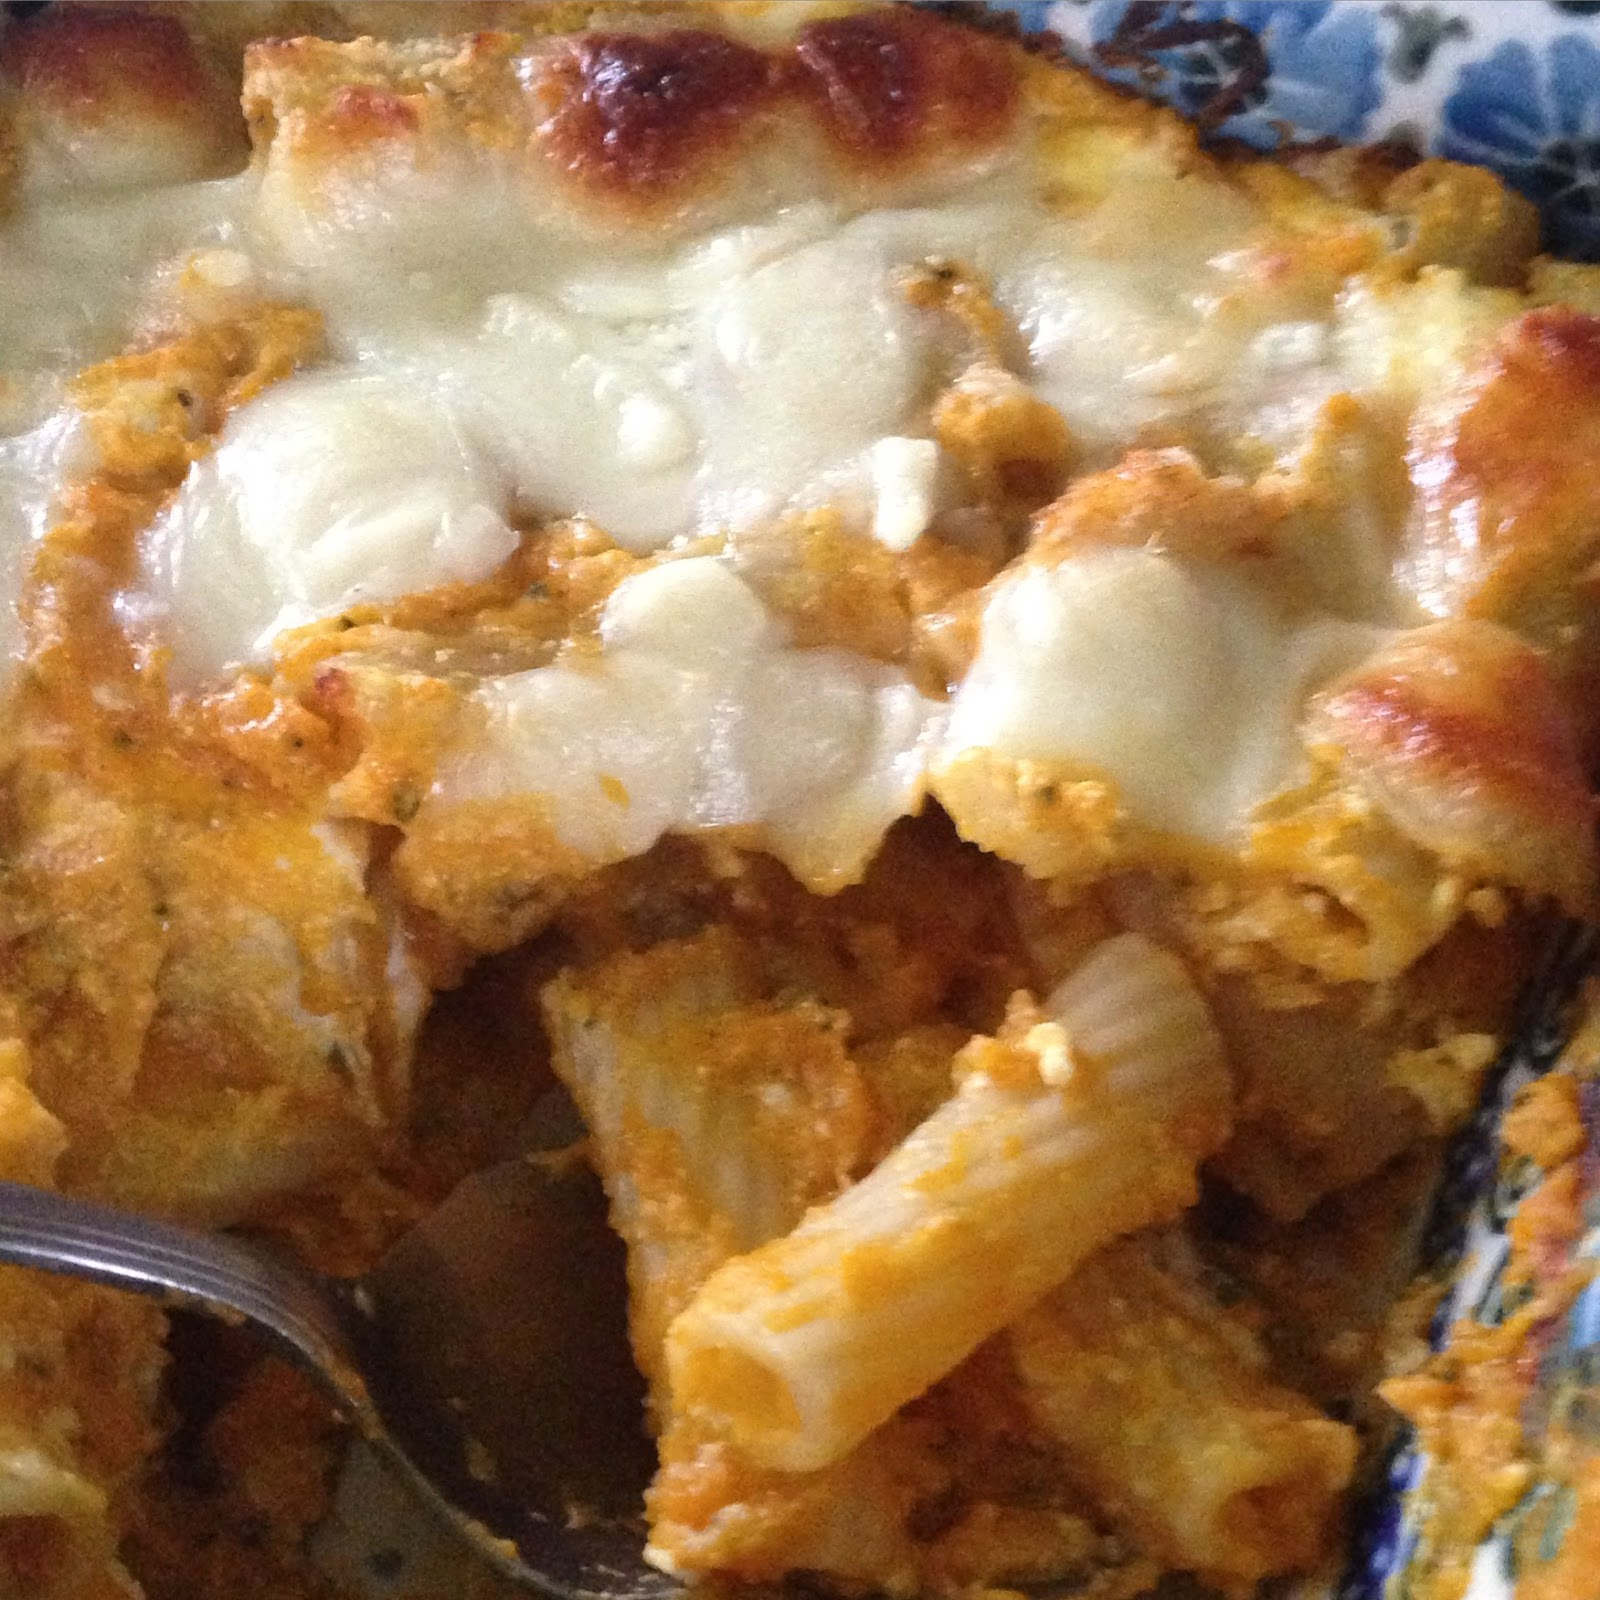 Leftover butternut puree transformed into butternut baked ziti.